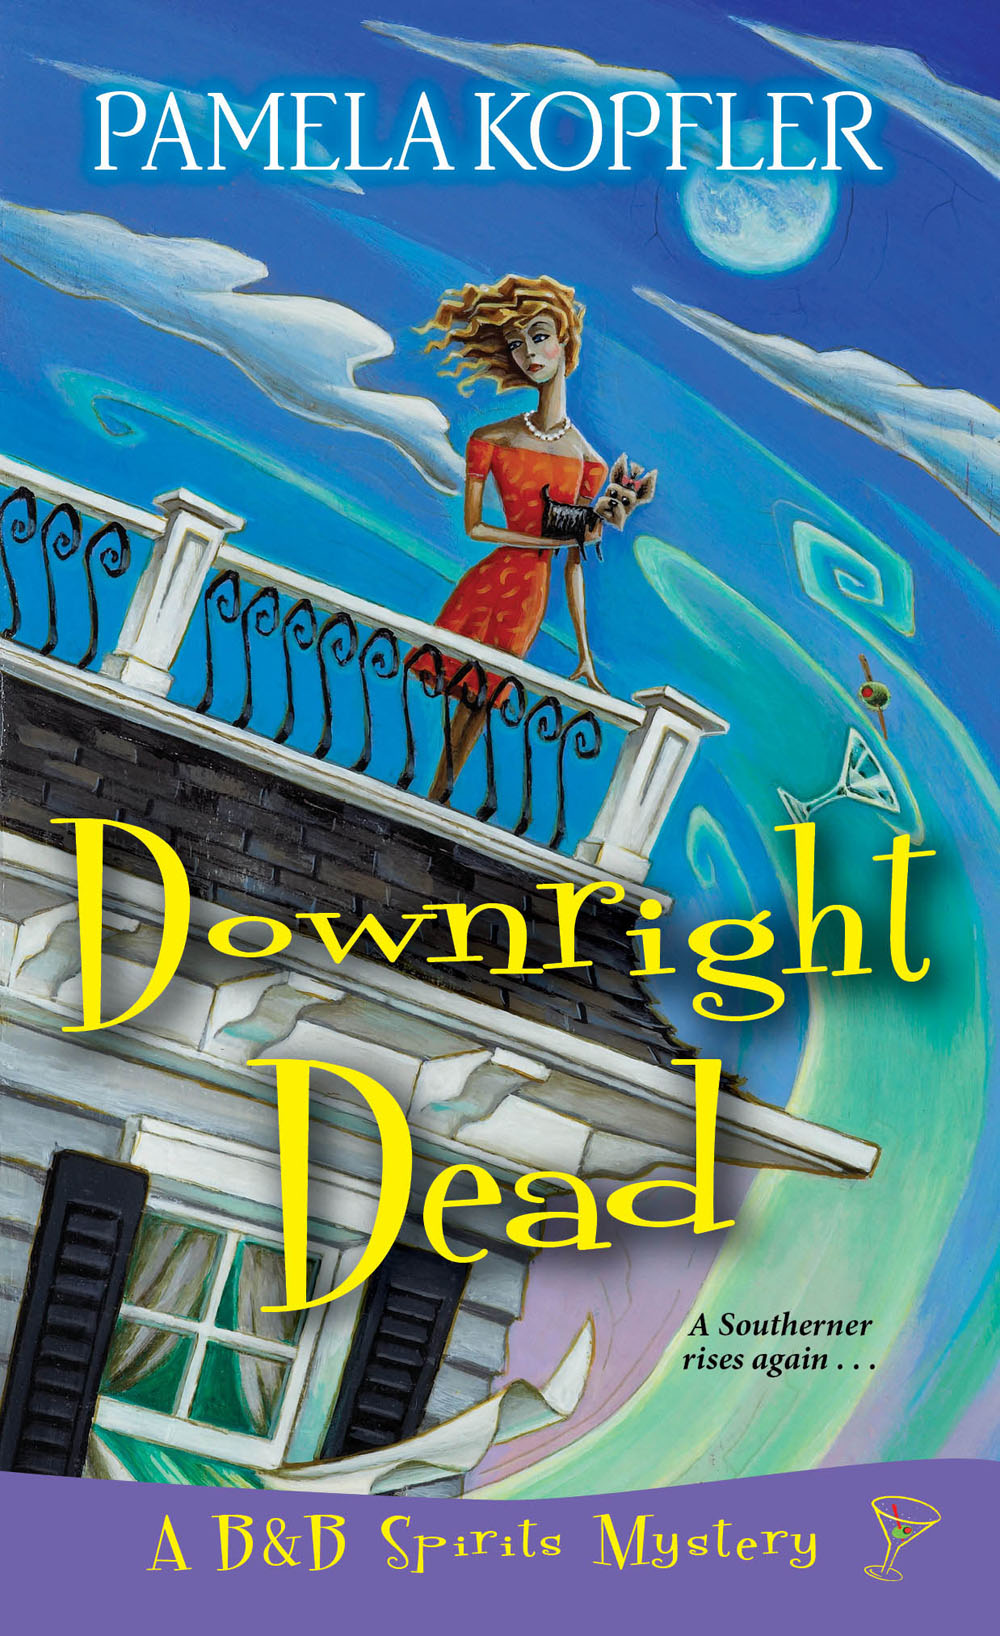 'Downright Dead' available for purchase here.